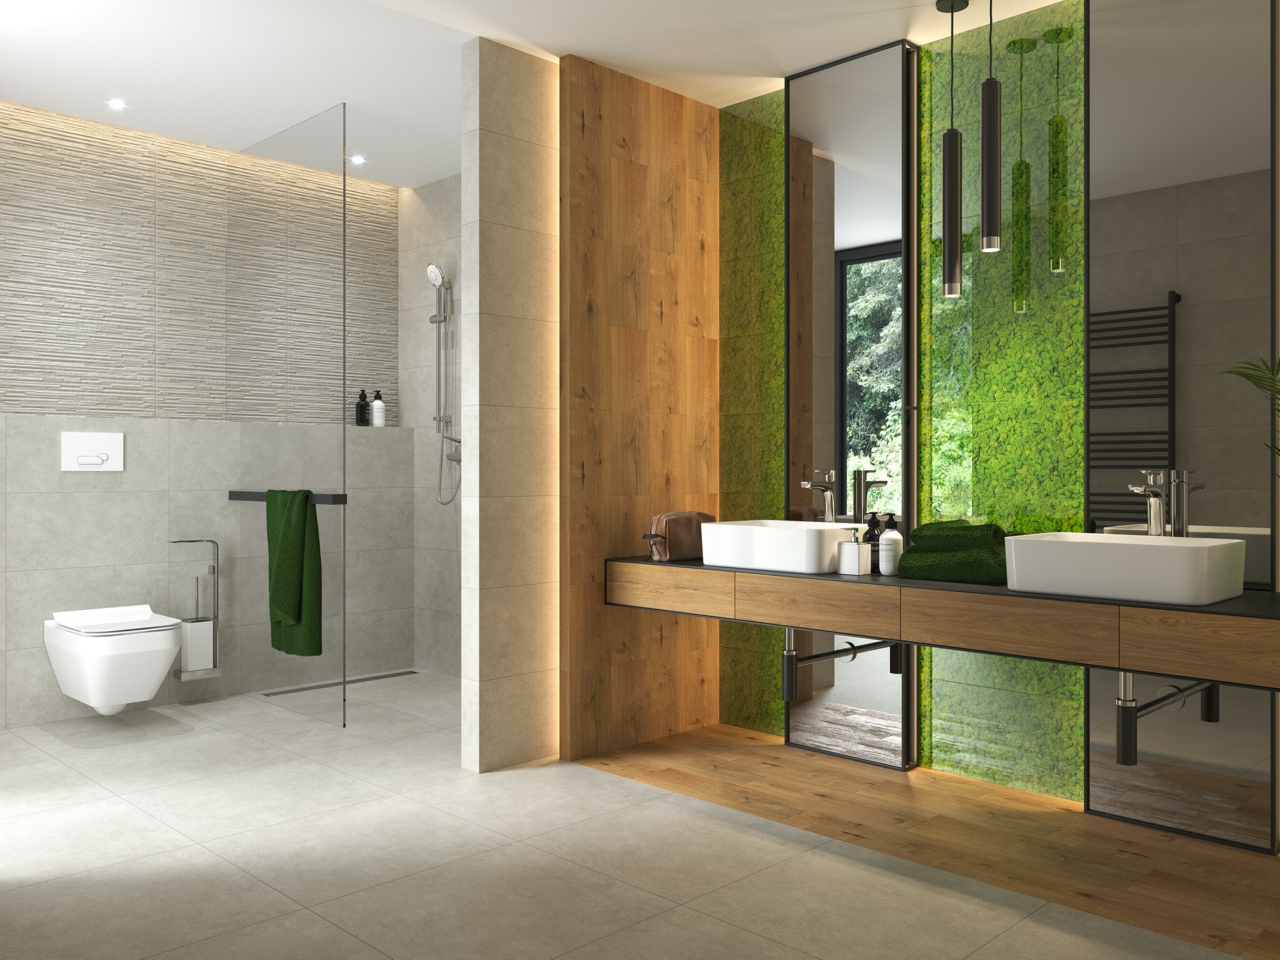 Fresh moss collection - ceramic wood tiles, moss printed tile and concrete tiles